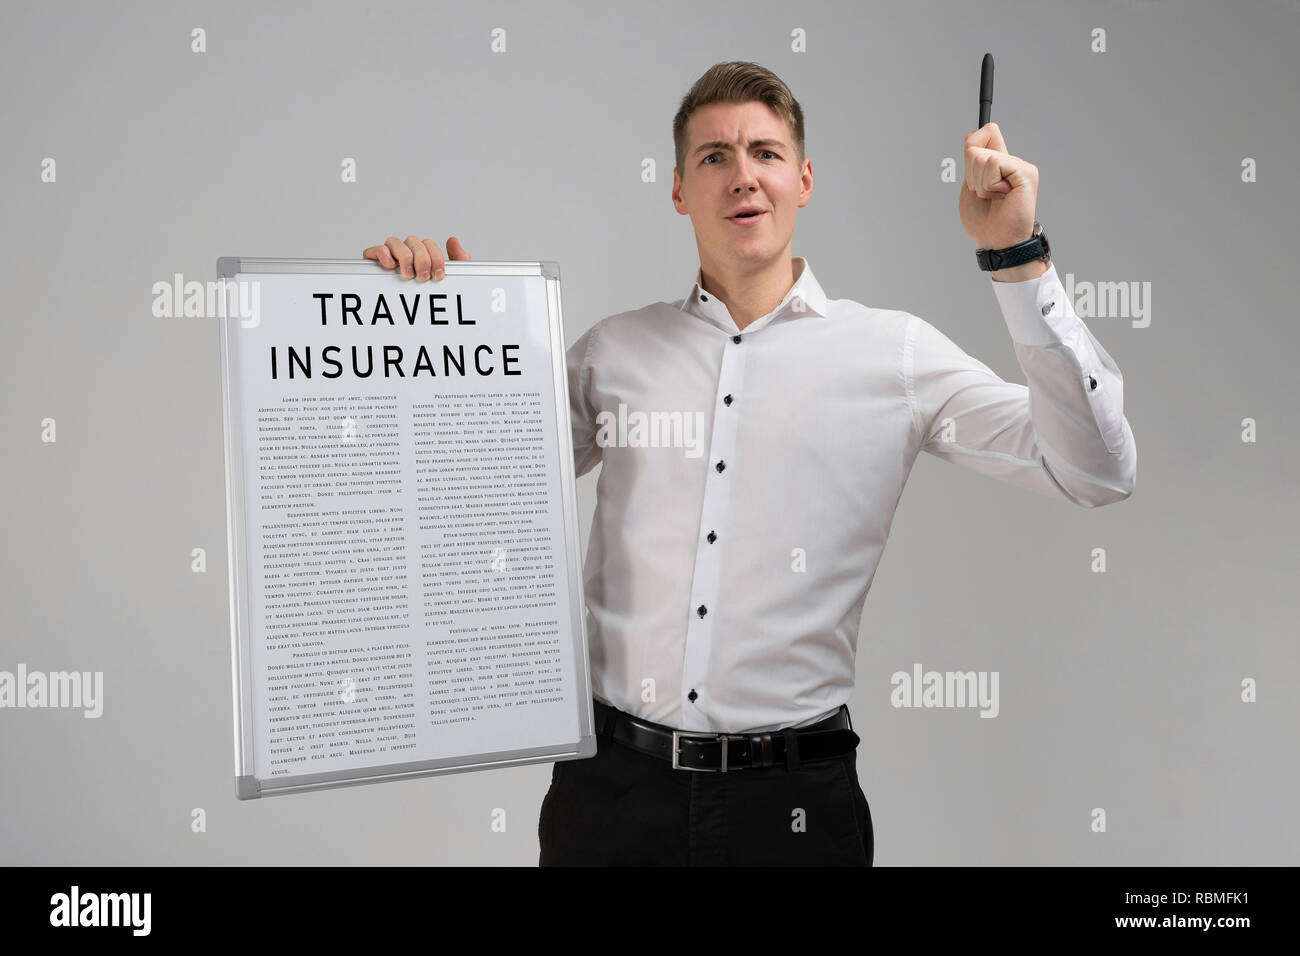 Young man holding a travel insurance list isolated on light background - Stock Image